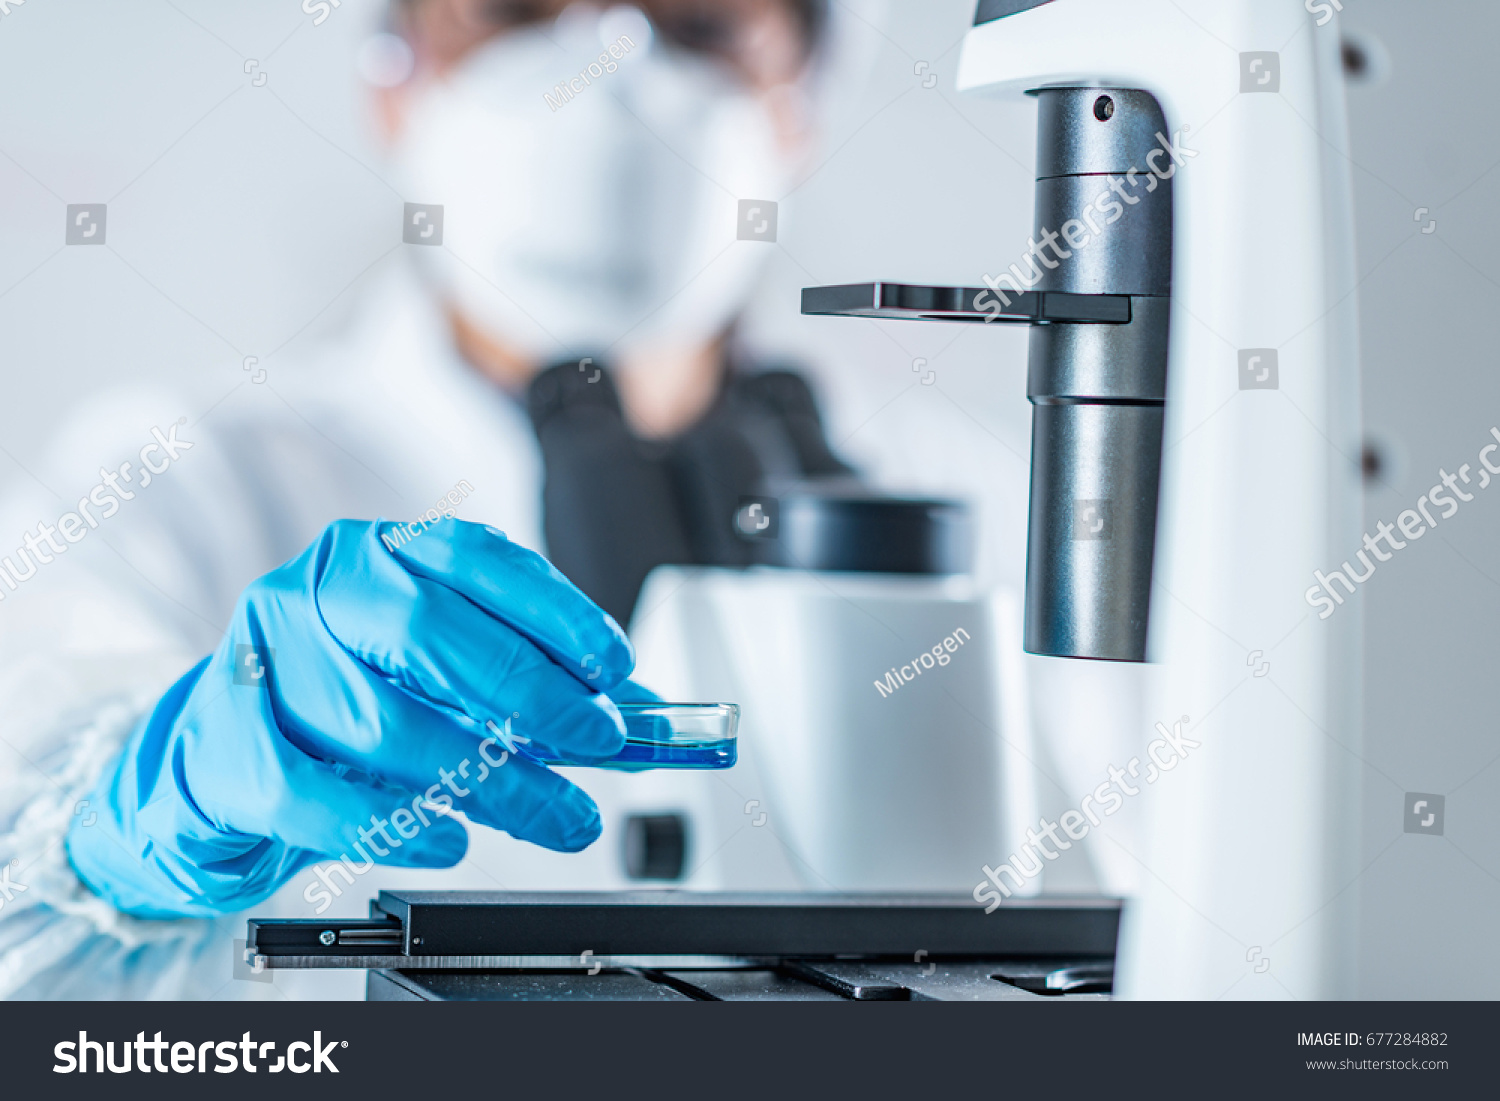 stock-photo-biotech-lab-research-placing-petri-dish-with-cell